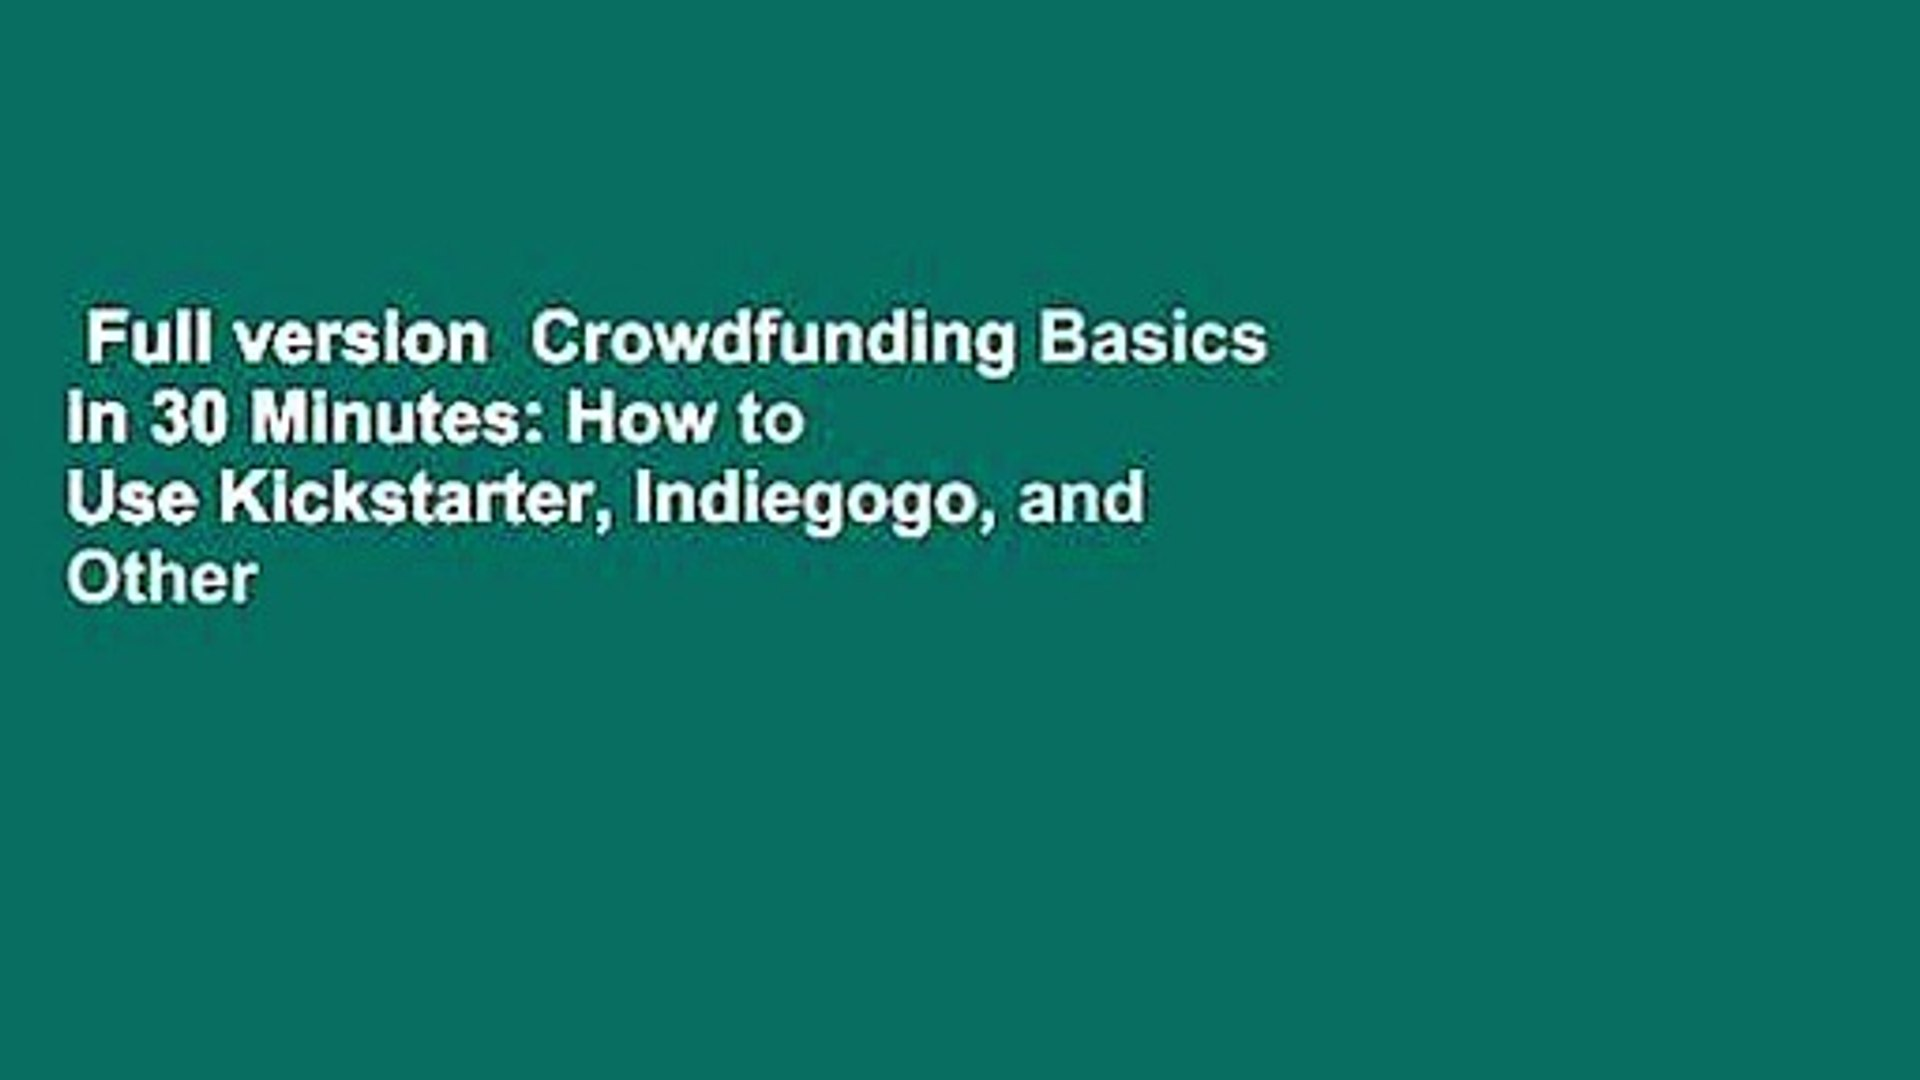 Full version  Crowdfunding Basics in 30 Minutes: How to Use Kickstarter, Indiegogo, and Other